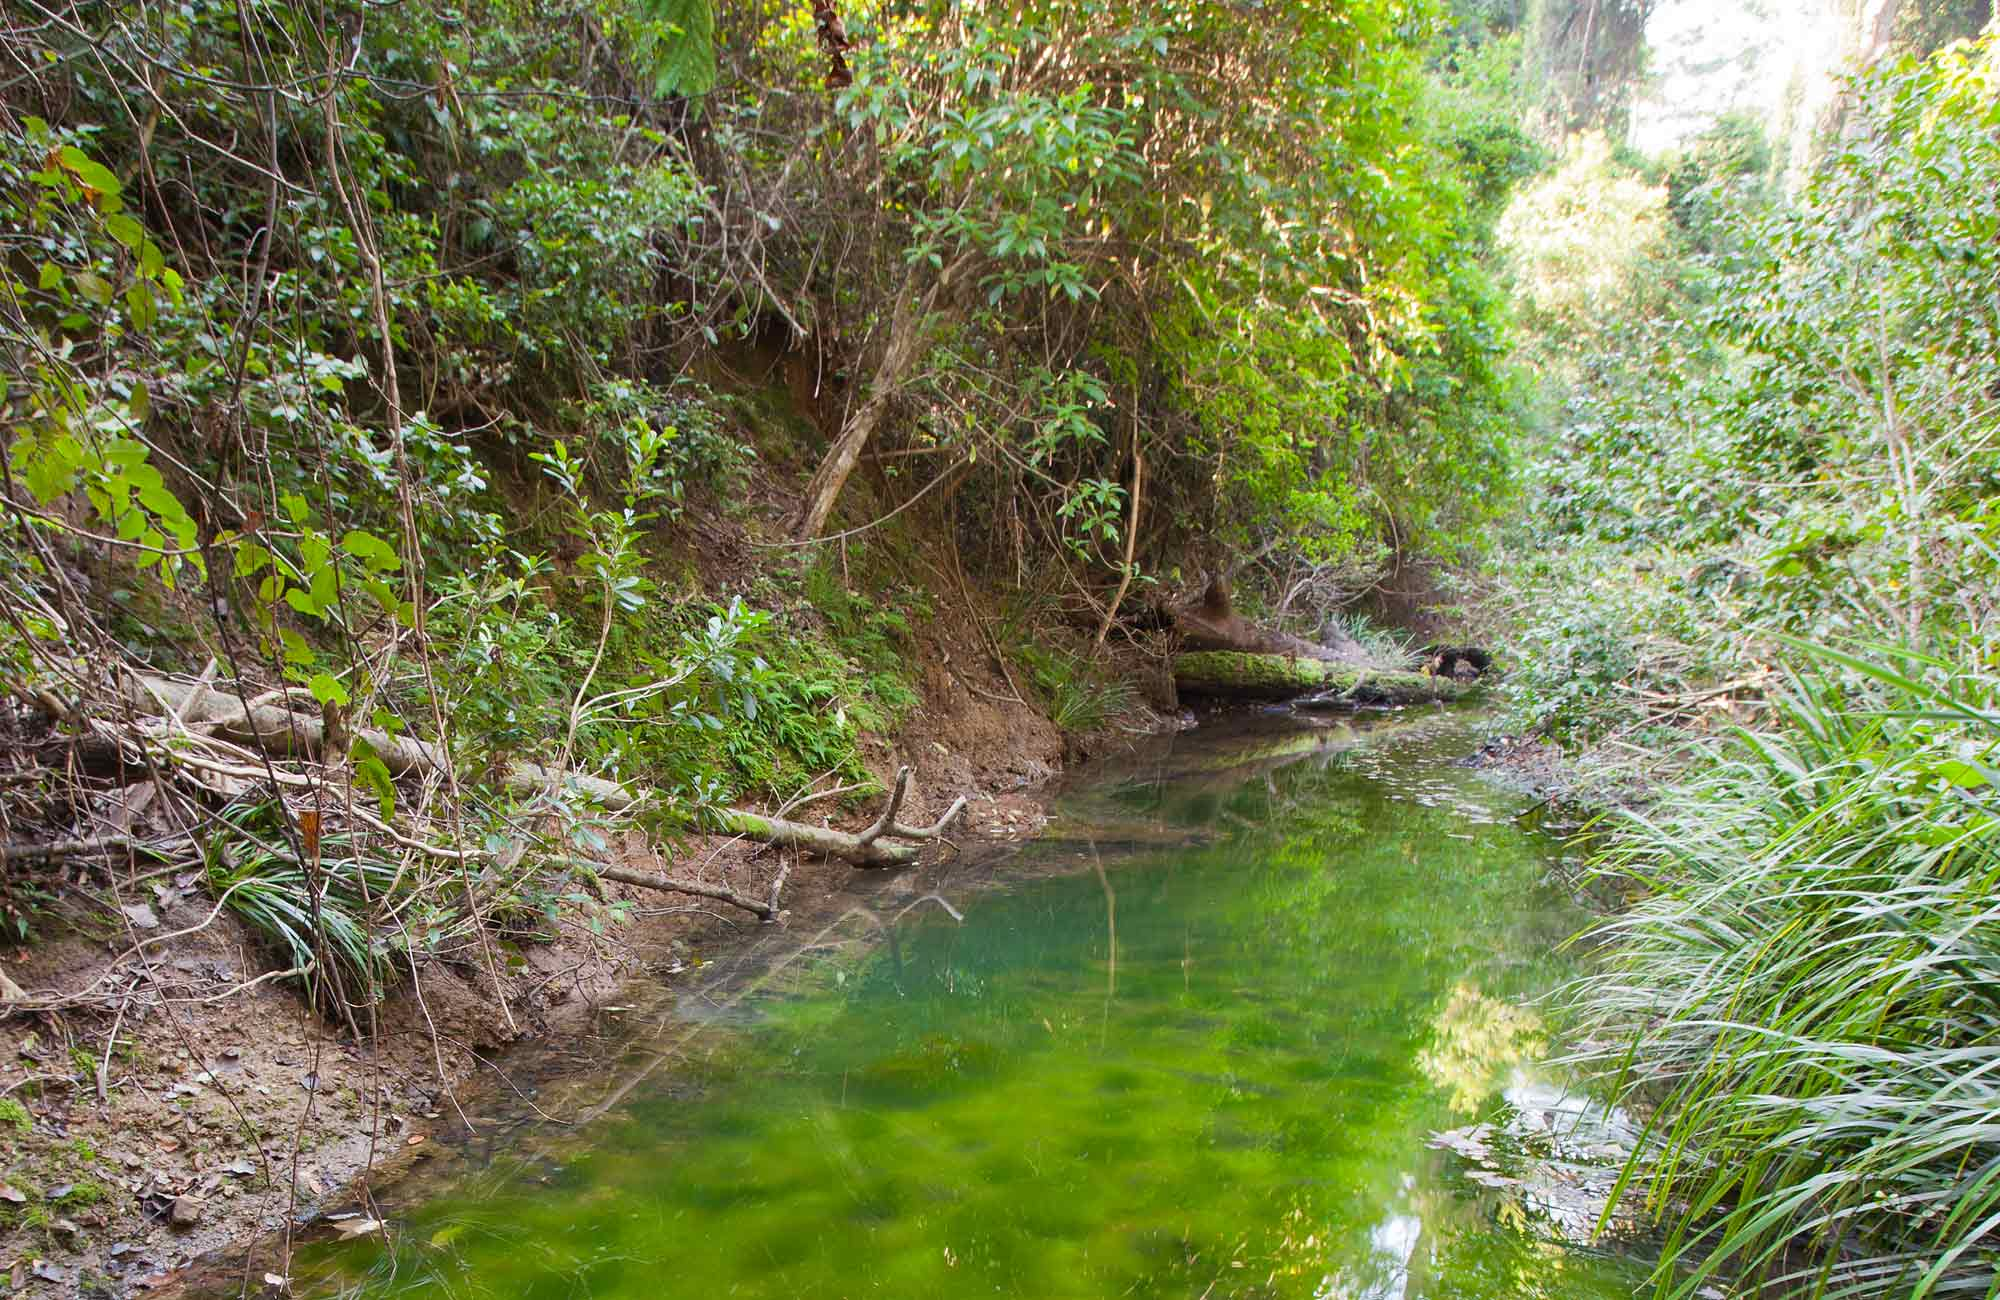 Stockyard Creek and surrounding forest, Ngambaa Nature Reserve. Photo: Rob Cleary